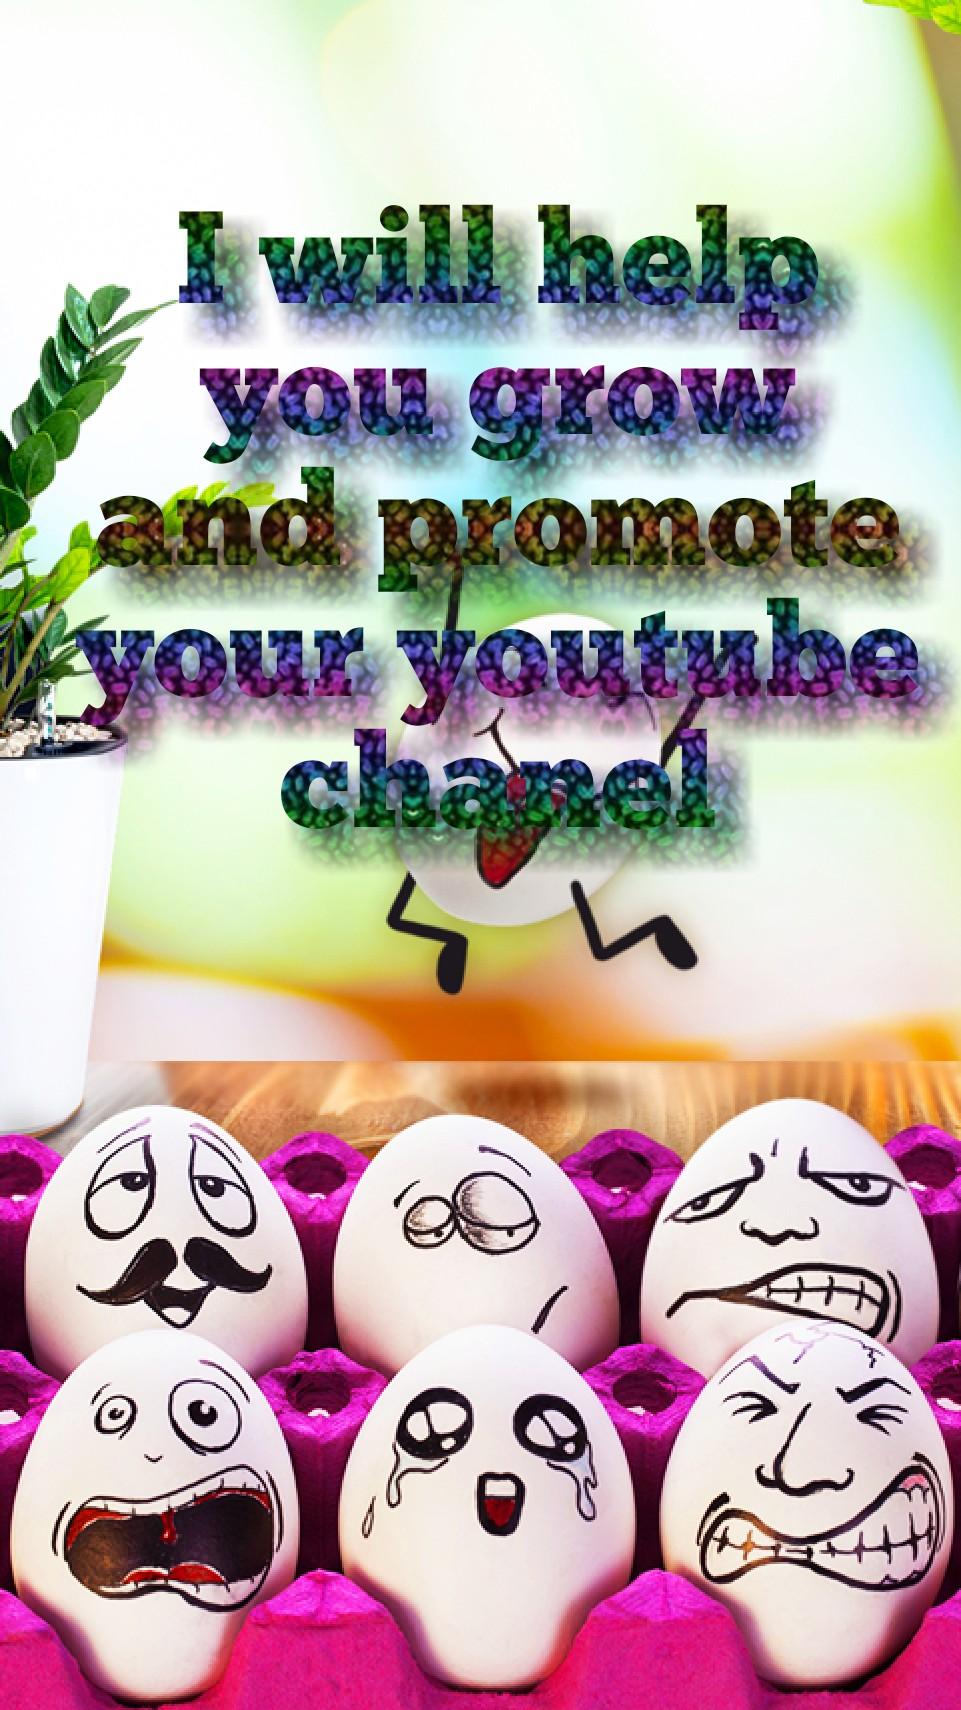 I will help you grow and promote your youtube chanel